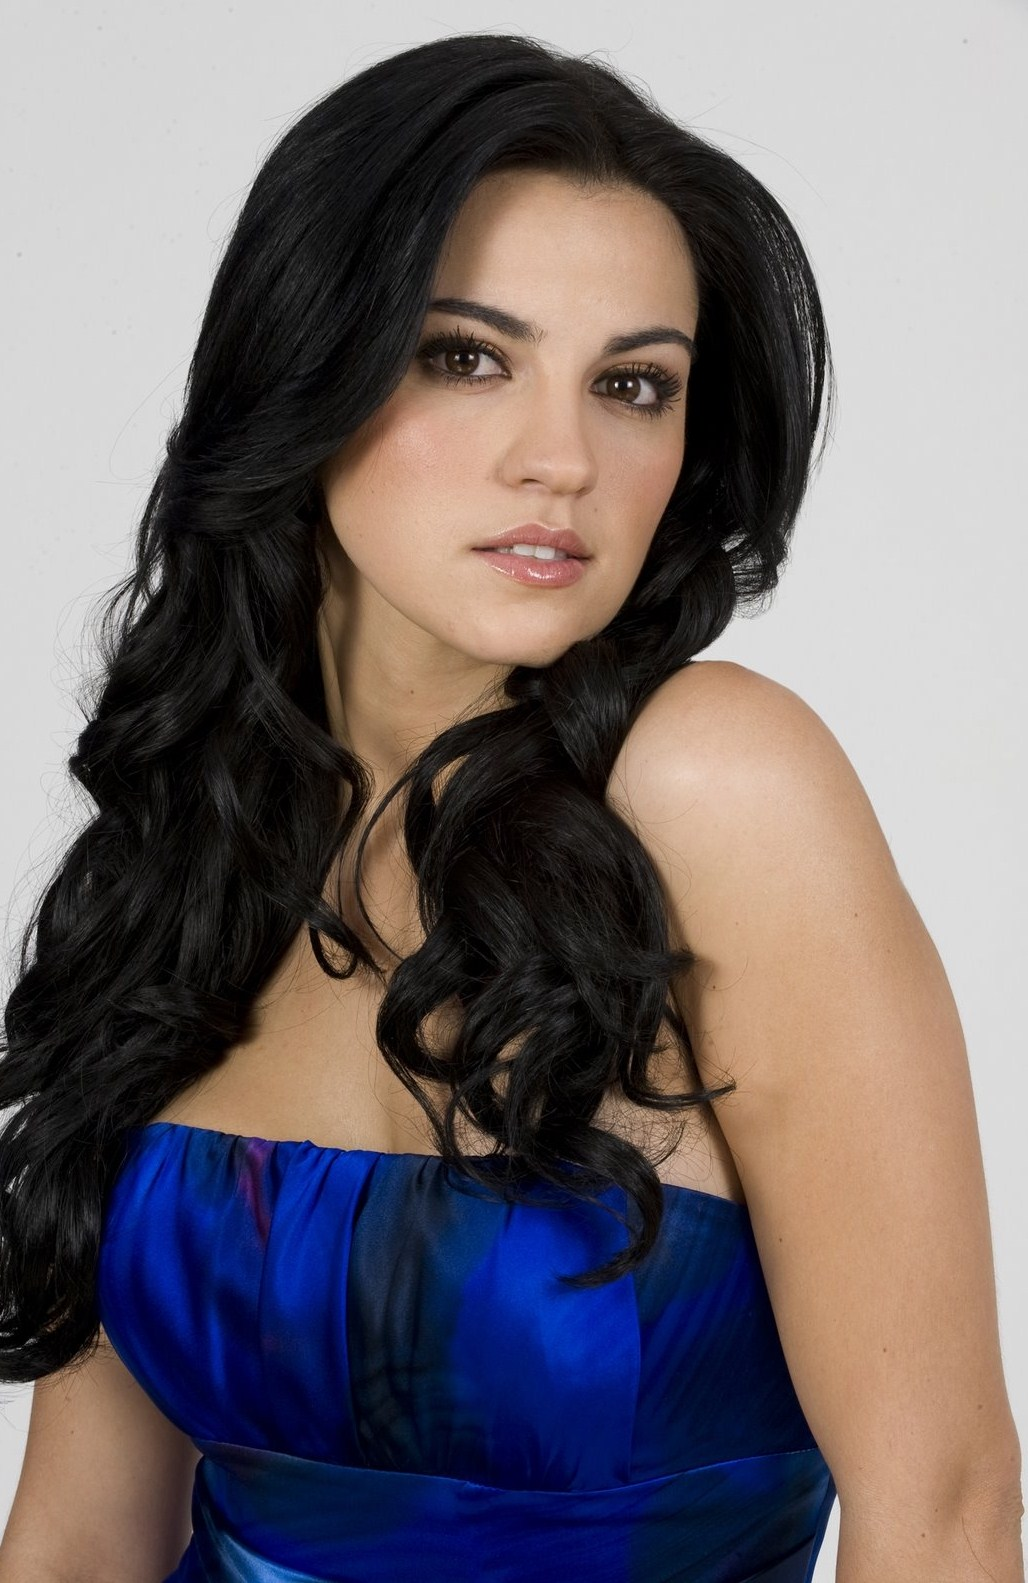 Tips: Maite Perroni, 2018s chic hair style of the cool mysterious  actress